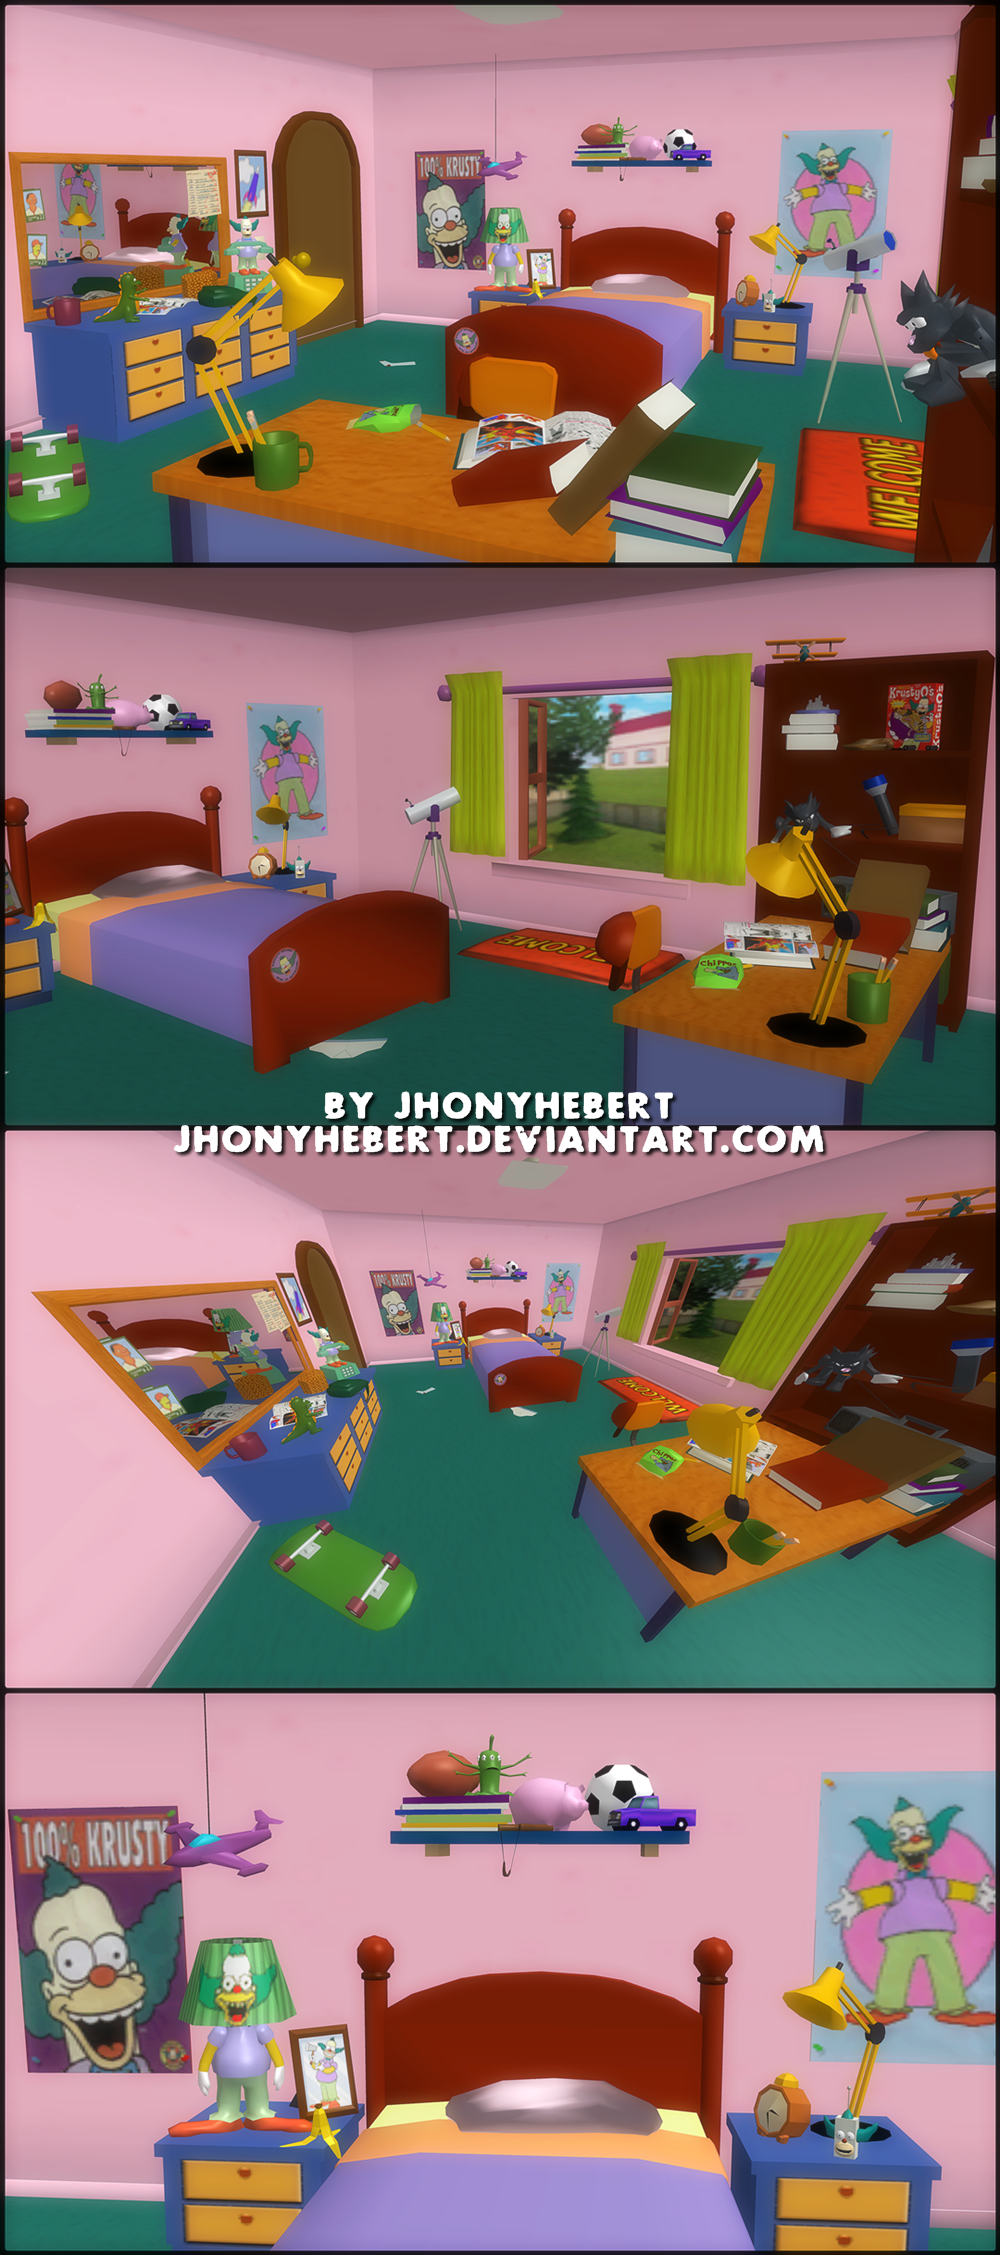 The simpsons hit and run bart bedroom by jhonyhebert on for Simpsons wallpaper for bedroom